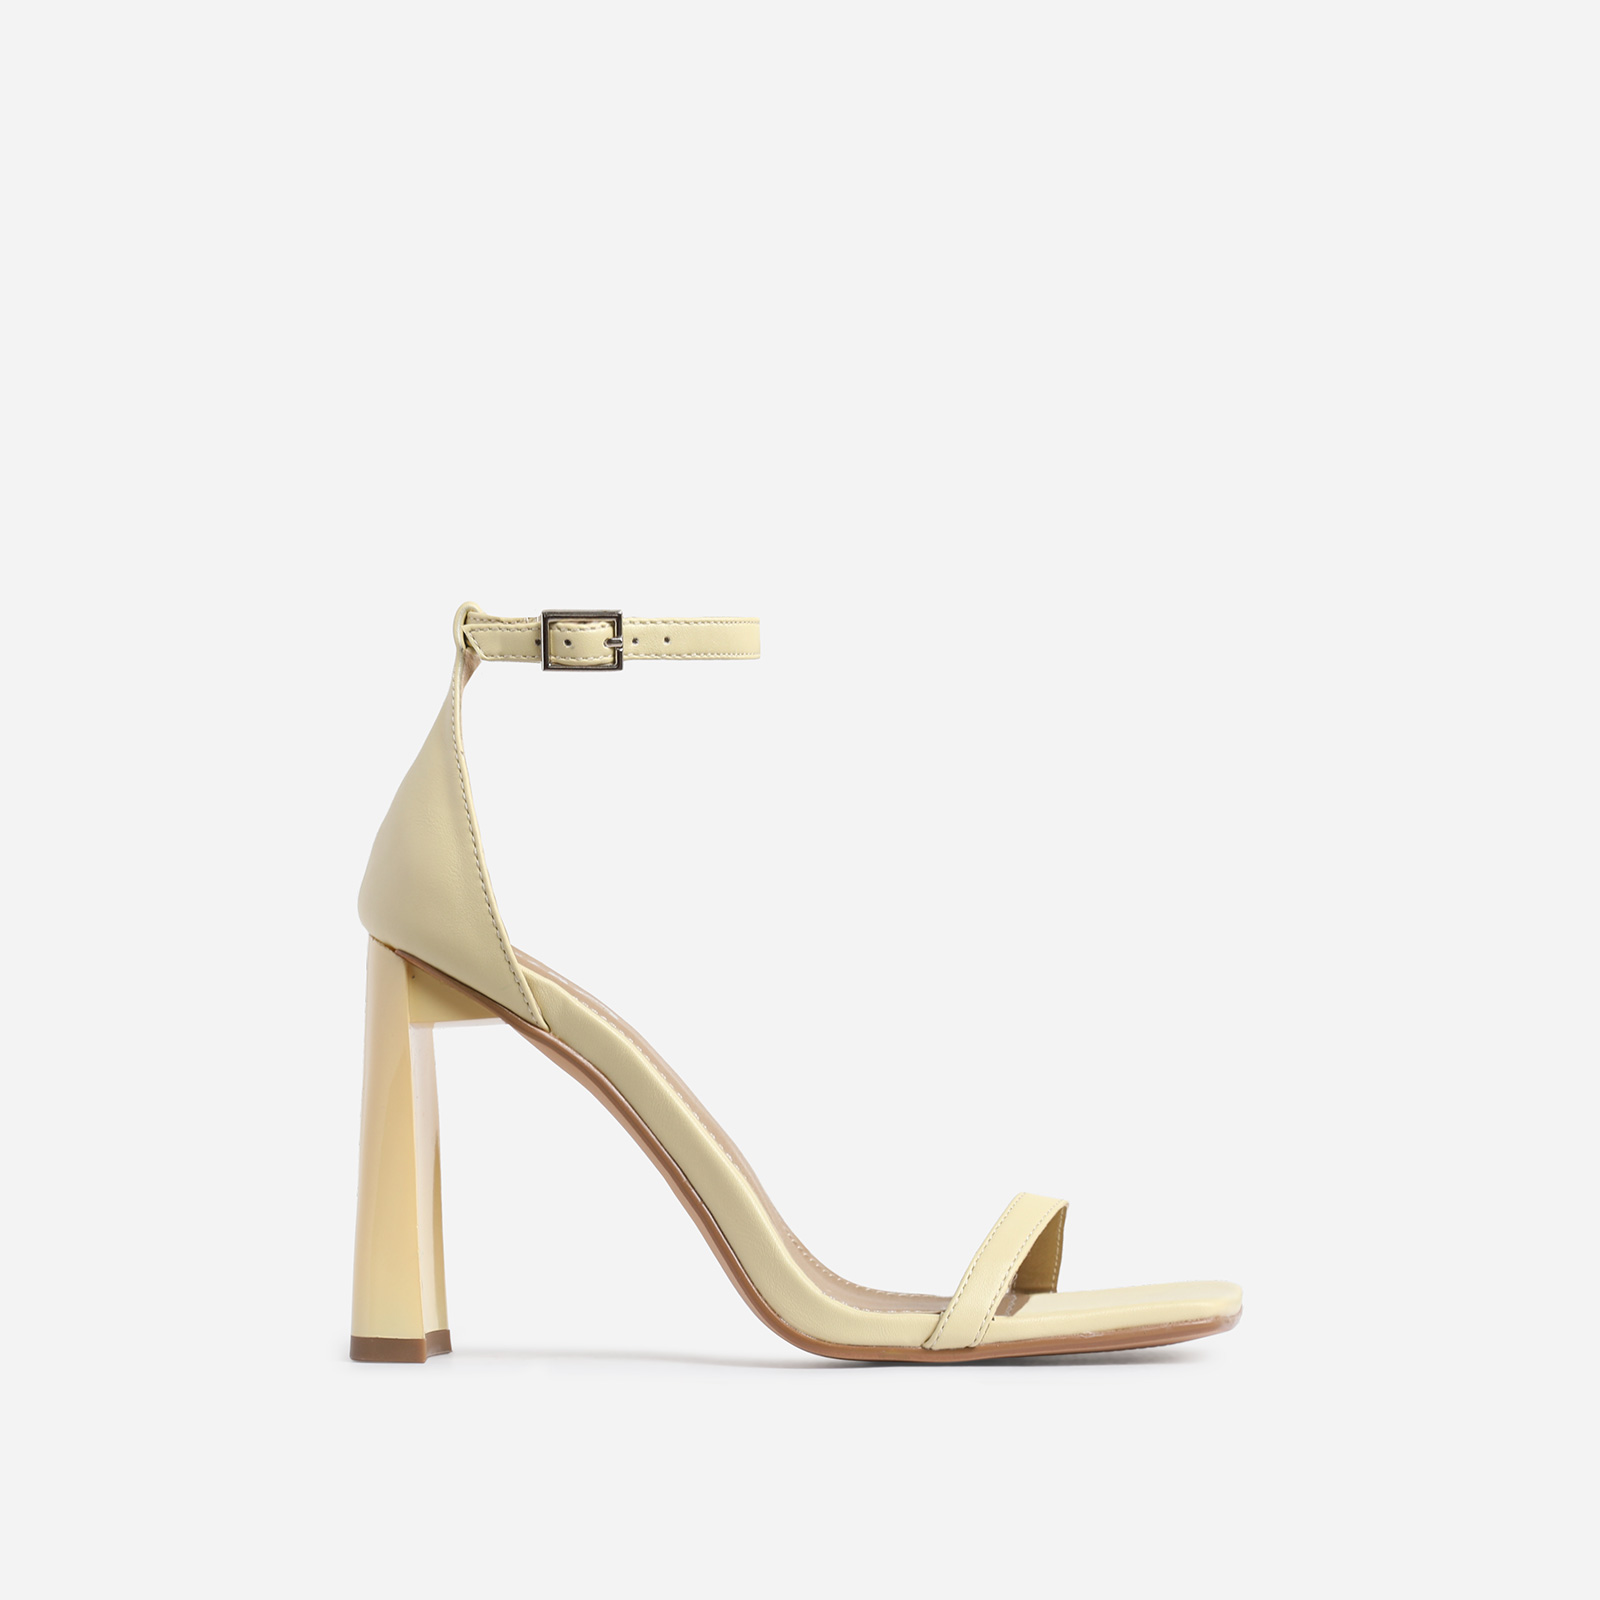 Ace Square Toe Flared Heel In Lemon Yellow Faux Leather